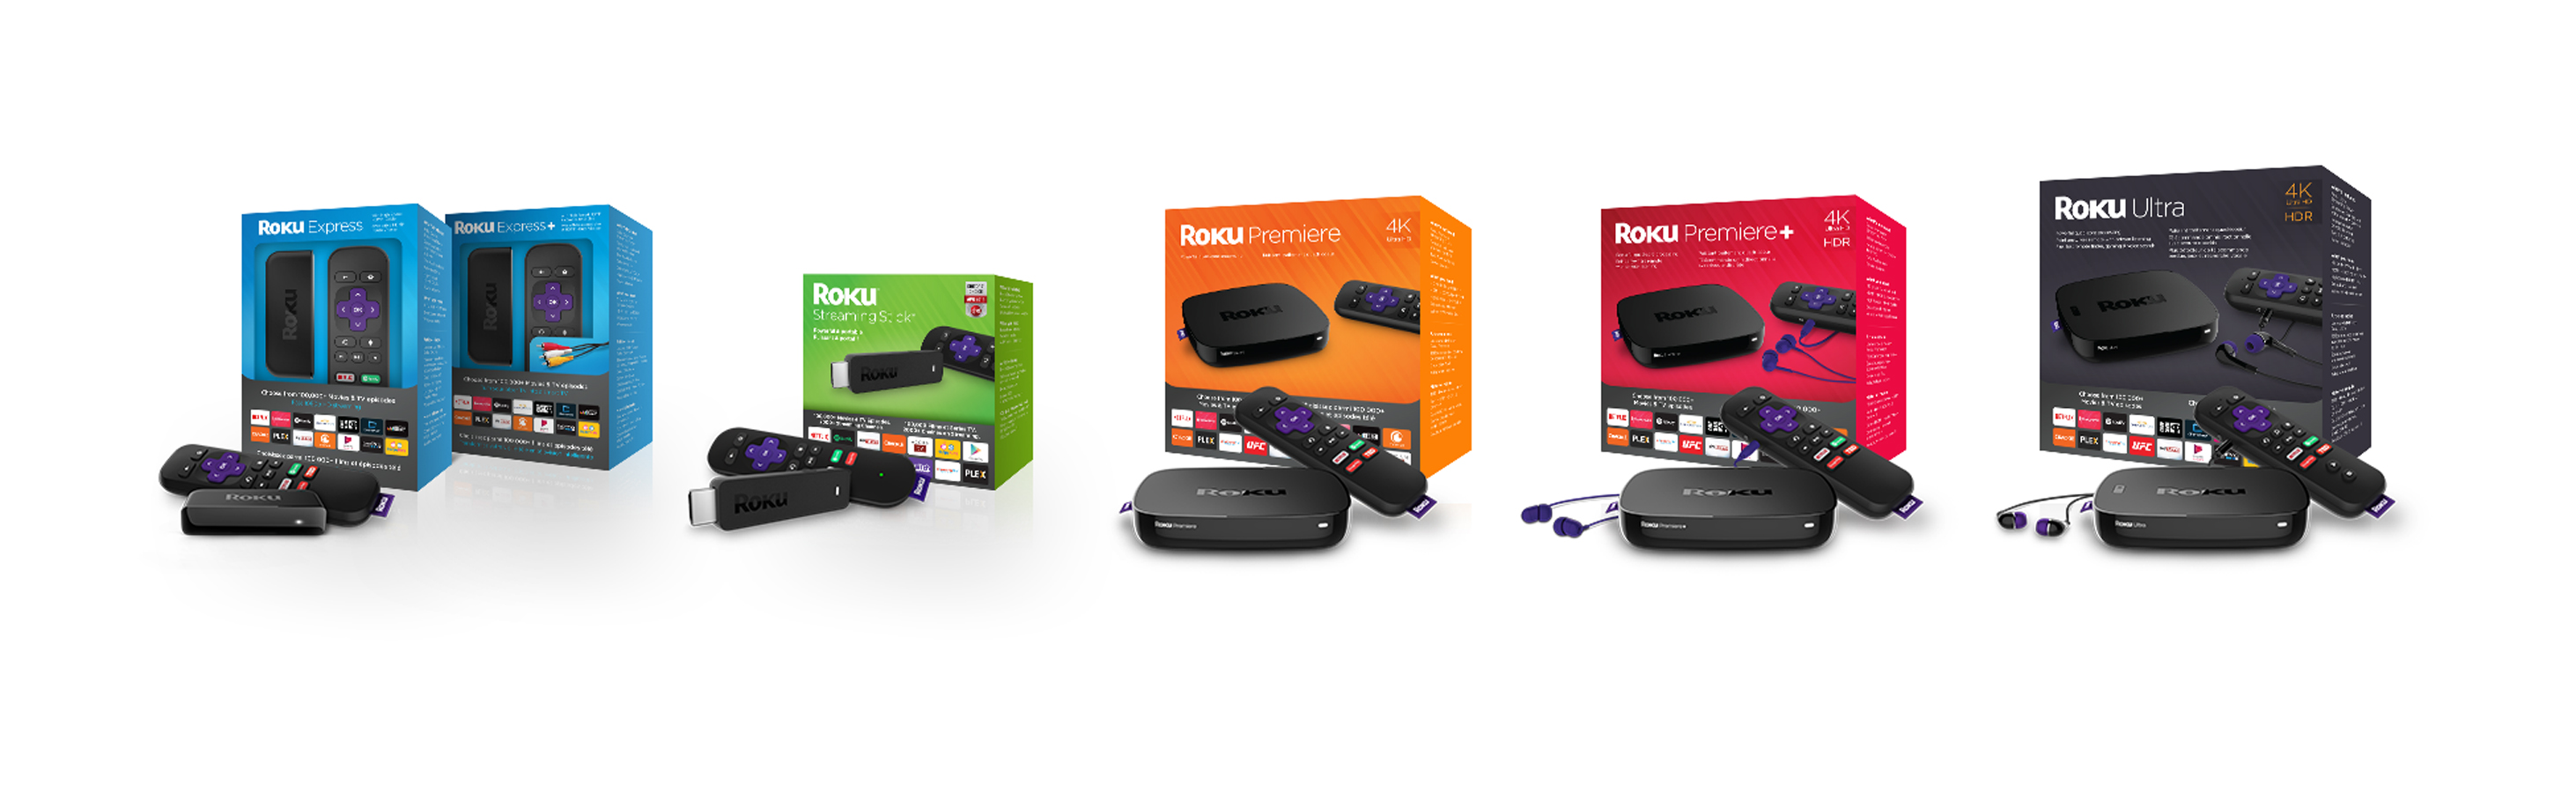 Roku Line-up Packaging Wide